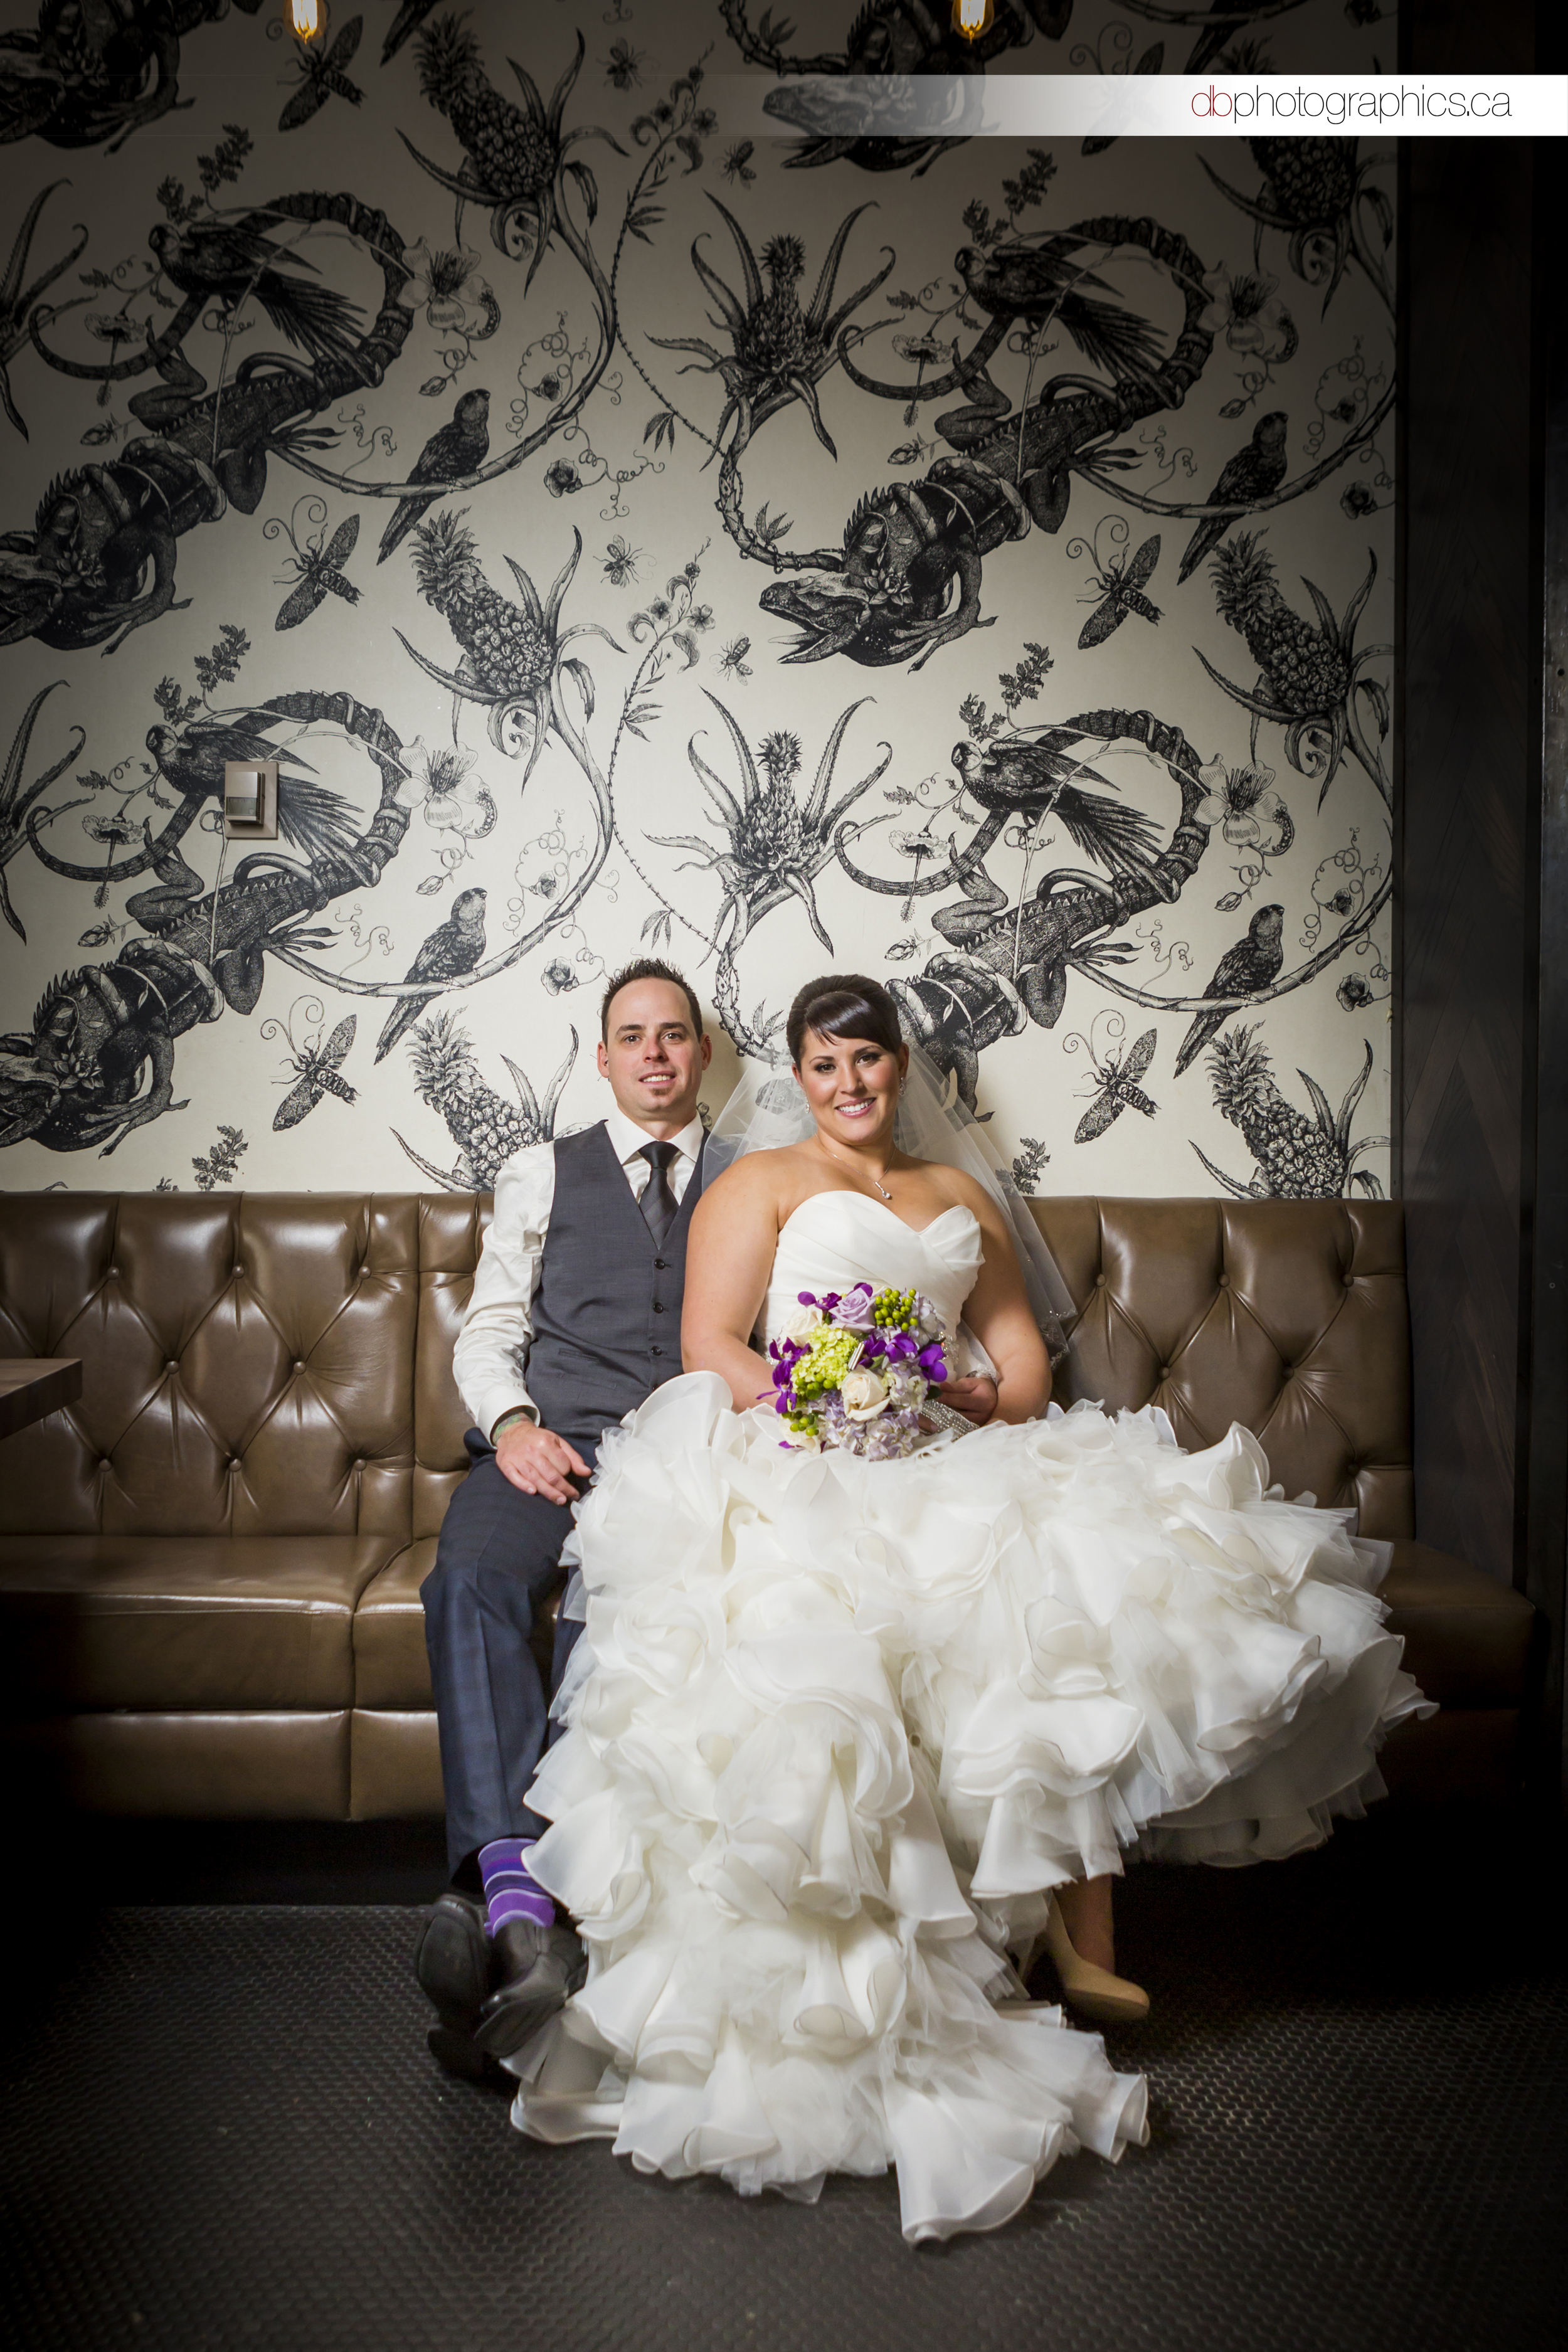 rob-alicia-wedding-475-lr.jpg